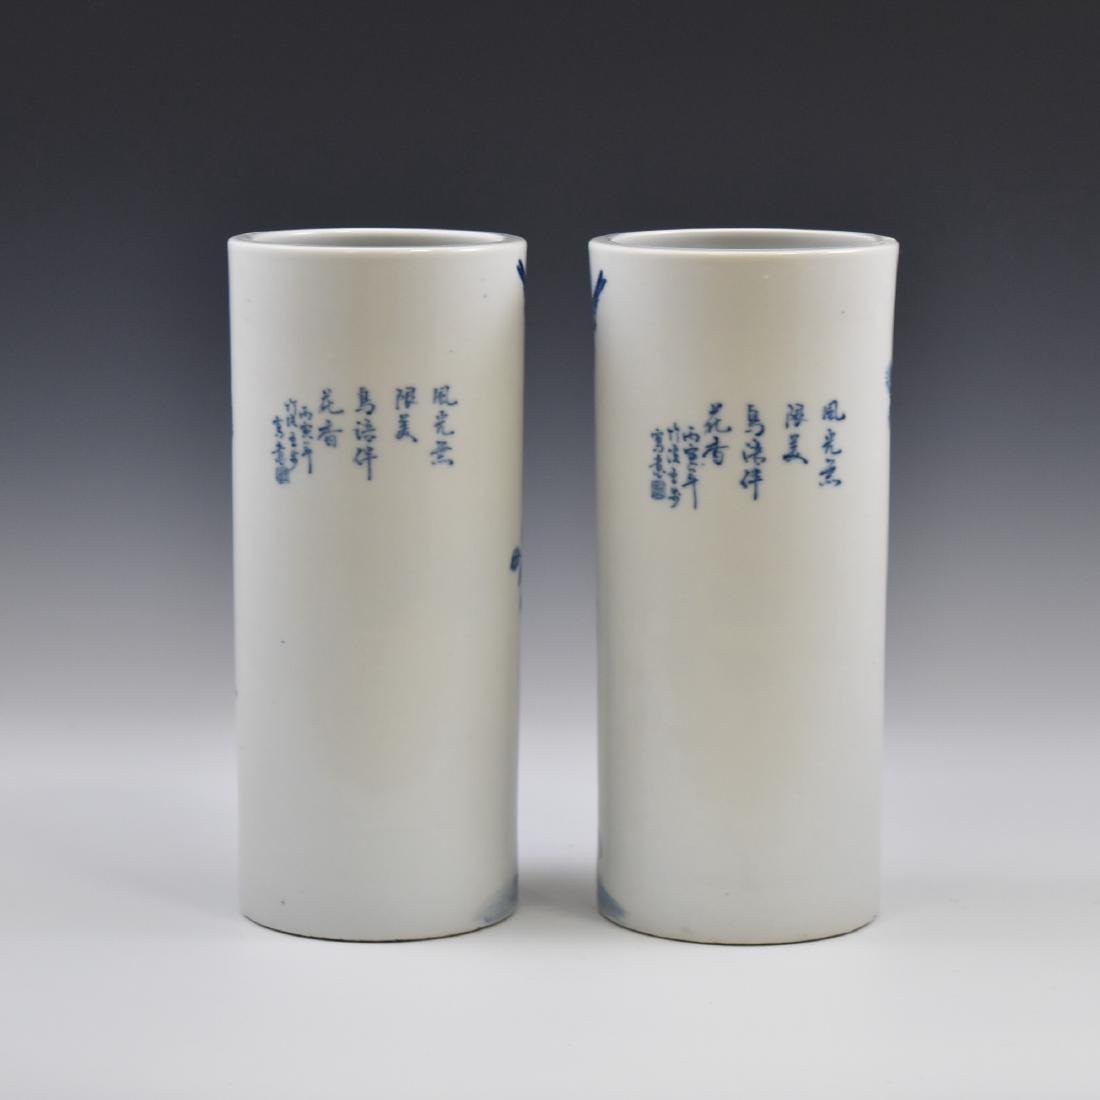 PAIR OF 19TH CENTURY CHINESE YI TONG HAT STANDS - 3